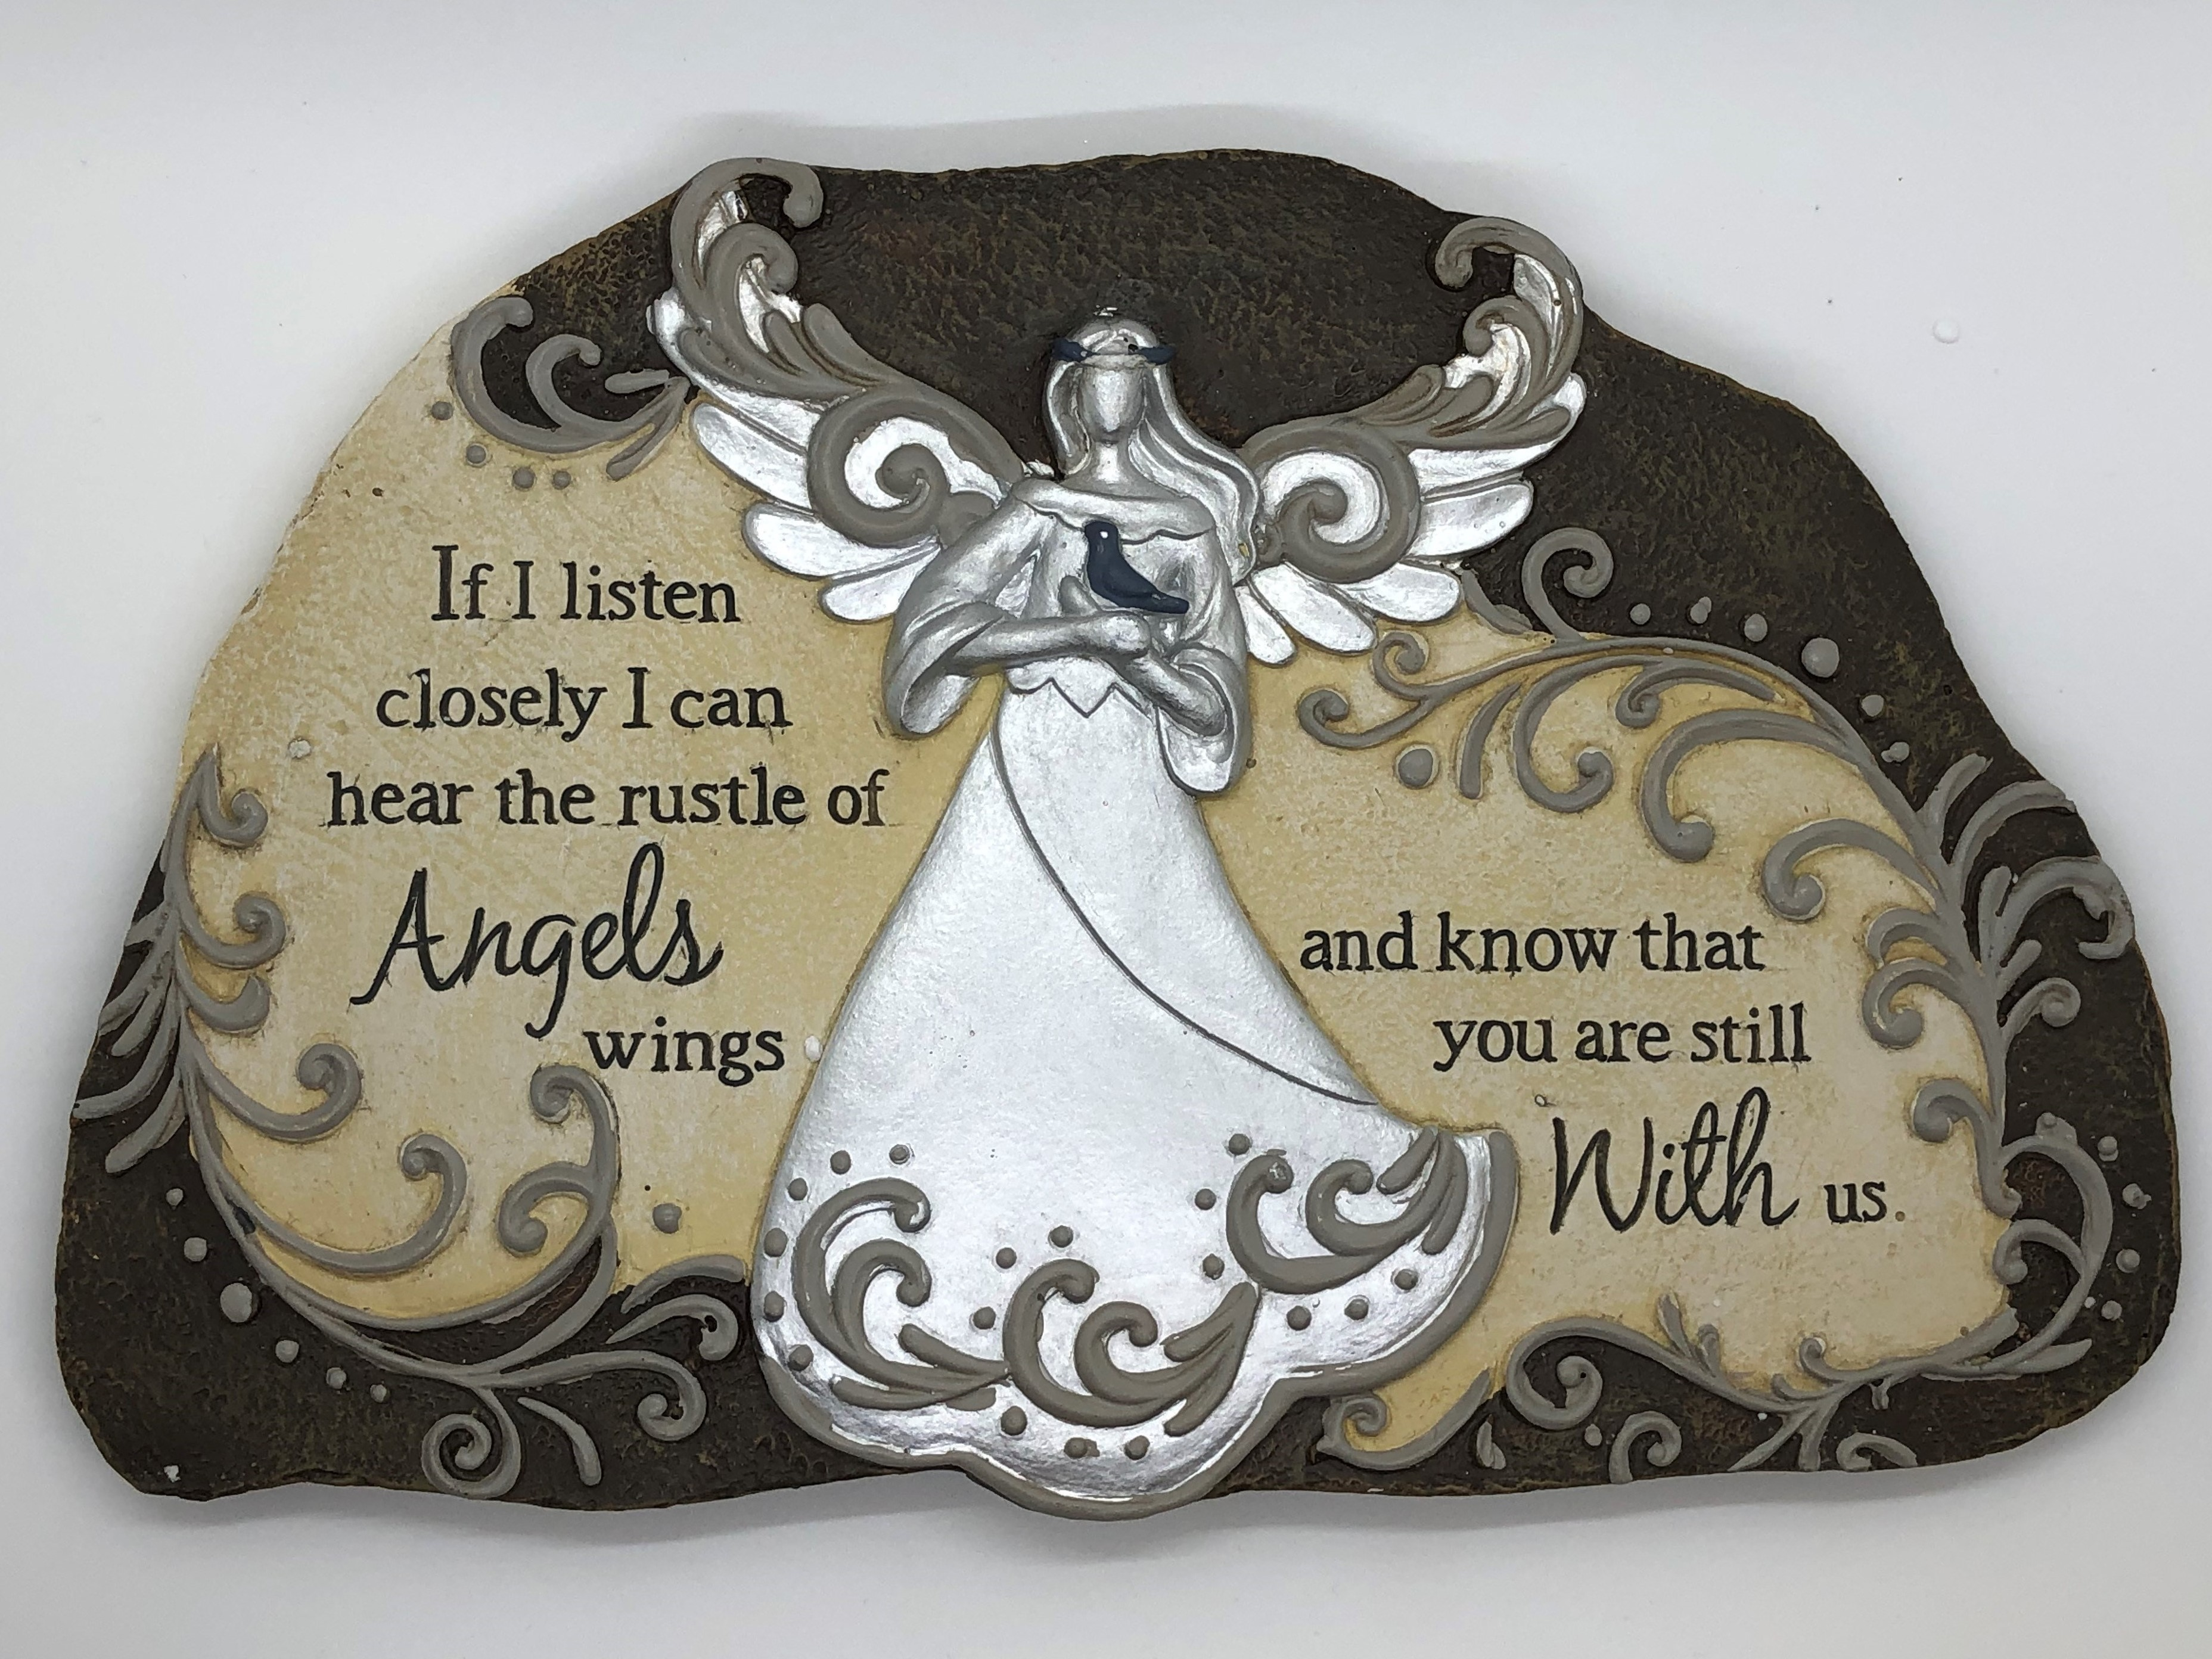 Garden Plaque Stepping Stone - If I listen closely I can hear the rustle of Angels wings